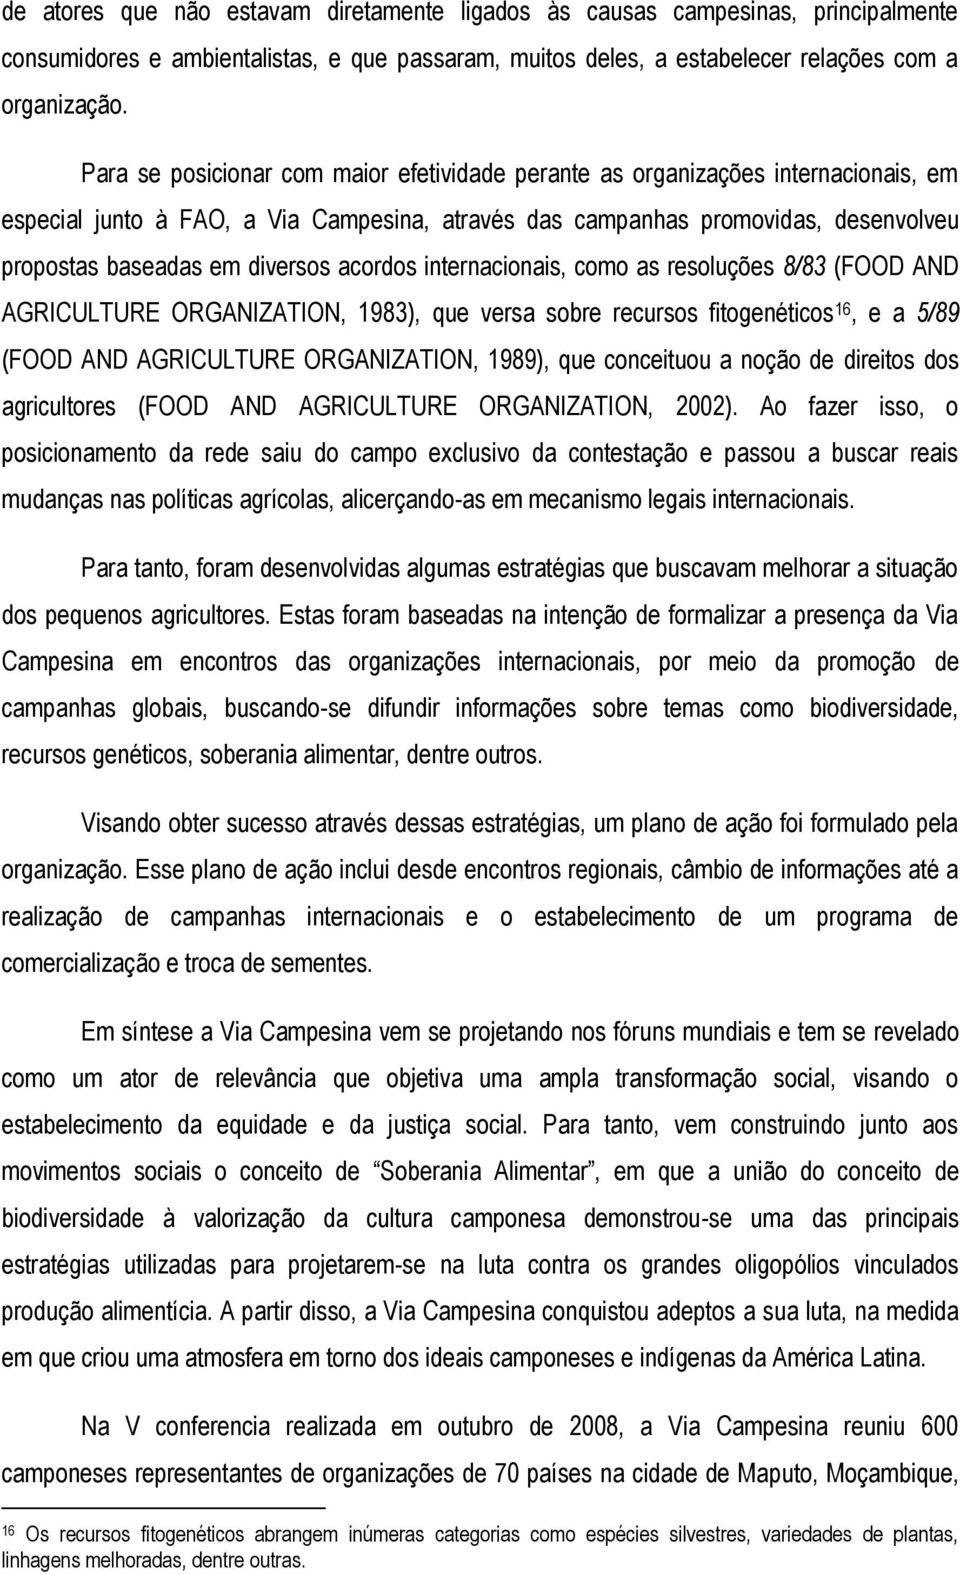 acordos internacionais, como as resoluções 8/83 (FOOD AND AGRICULTURE ORGANIZATION, 1983), que versa sobre recursos fitogenéticos 16, e a 5/89 (FOOD AND AGRICULTURE ORGANIZATION, 1989), que